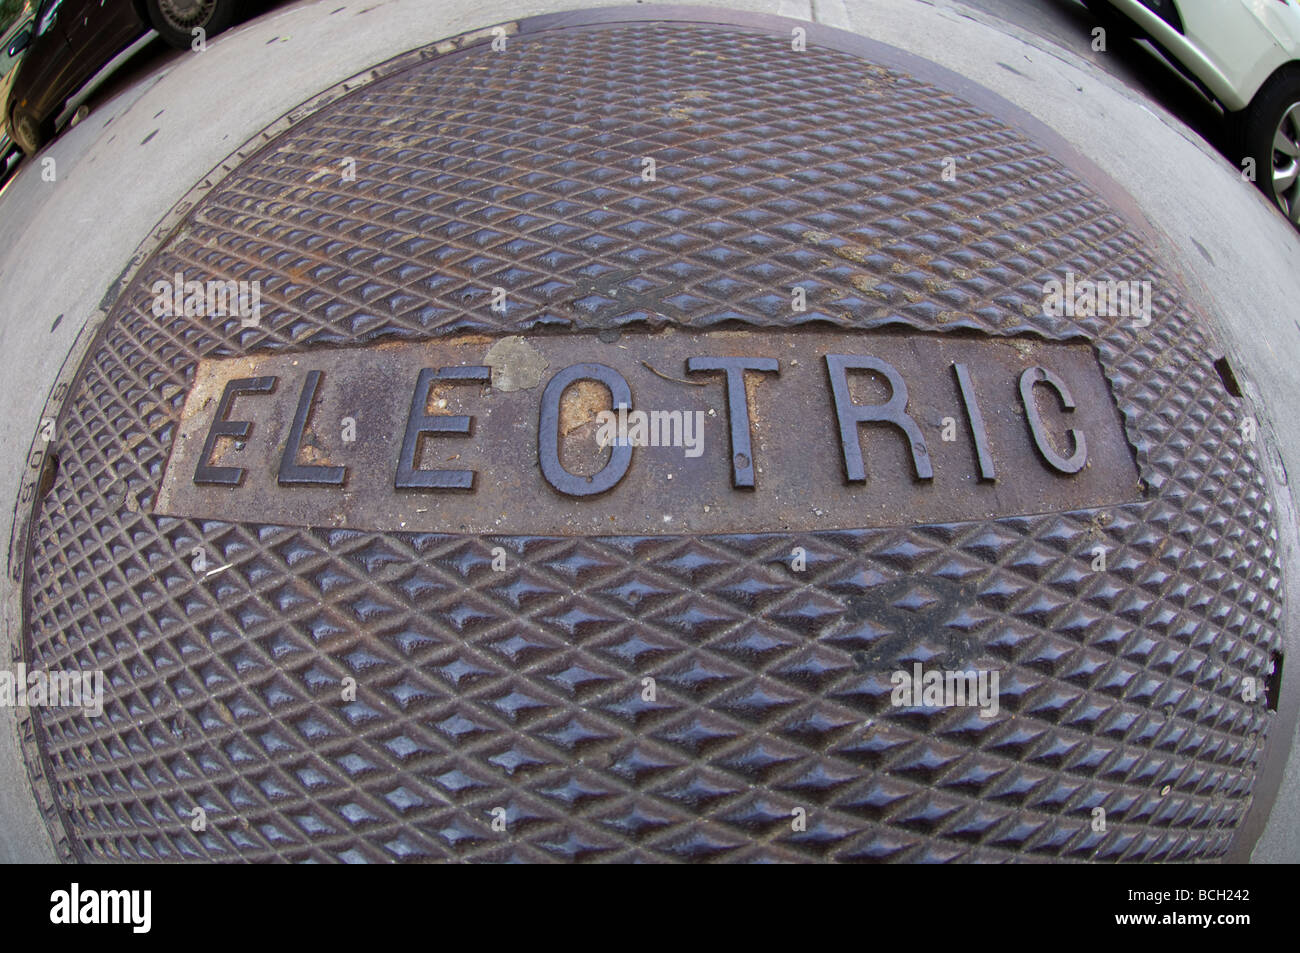 A manhole cover protecting electrical cables in the Chelsea neighborhood in New York - Stock Image